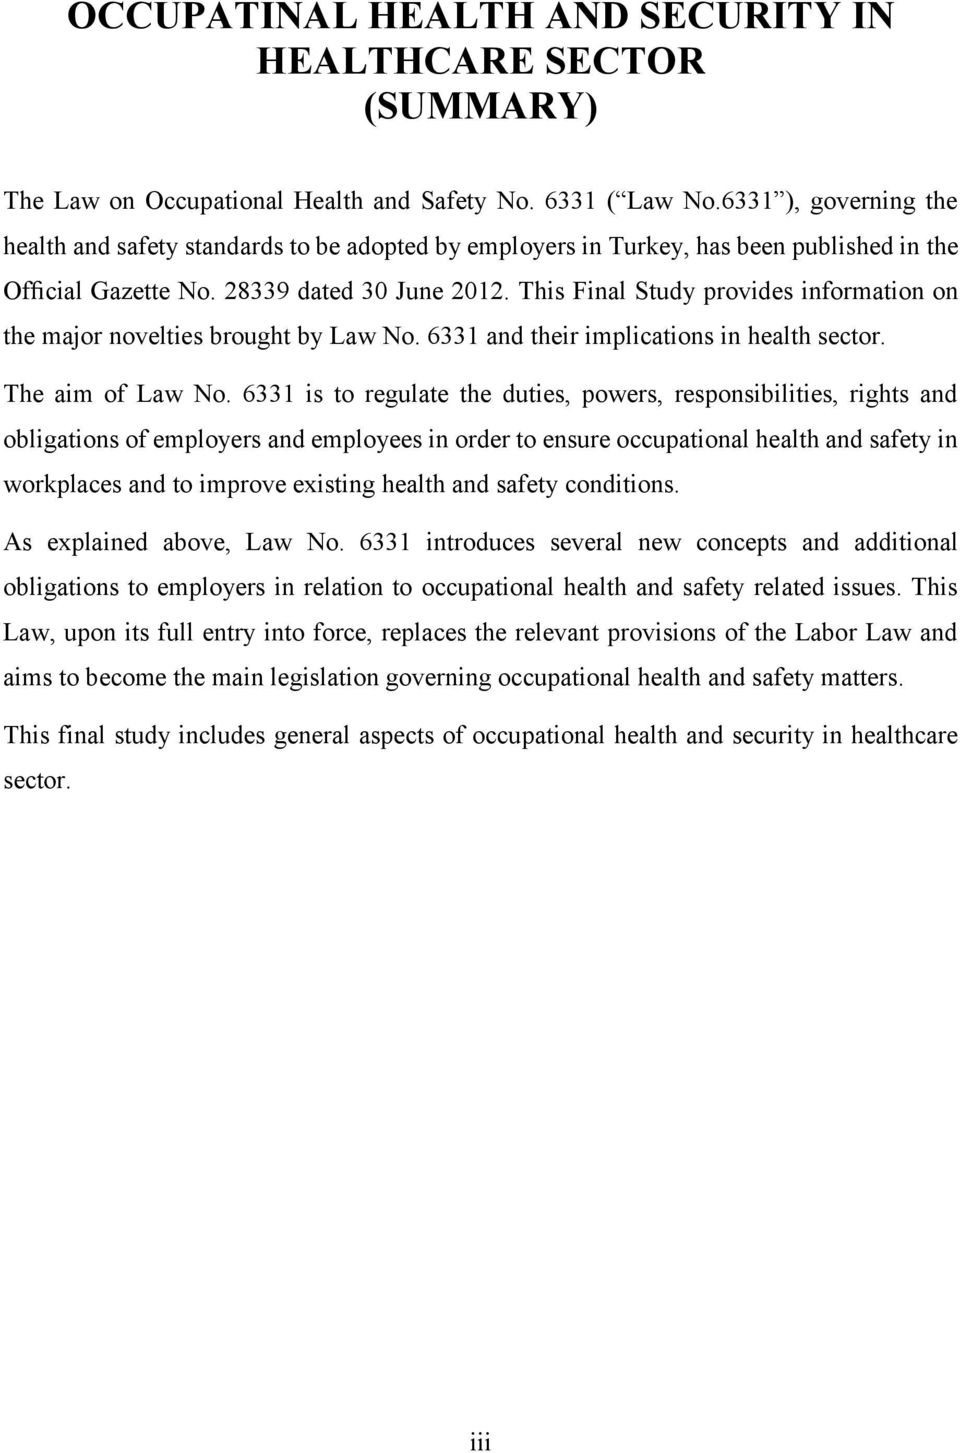 This Final Study provides information on the major novelties brought by Law No. 6331 and their implications in health sector. The aim of Law No.